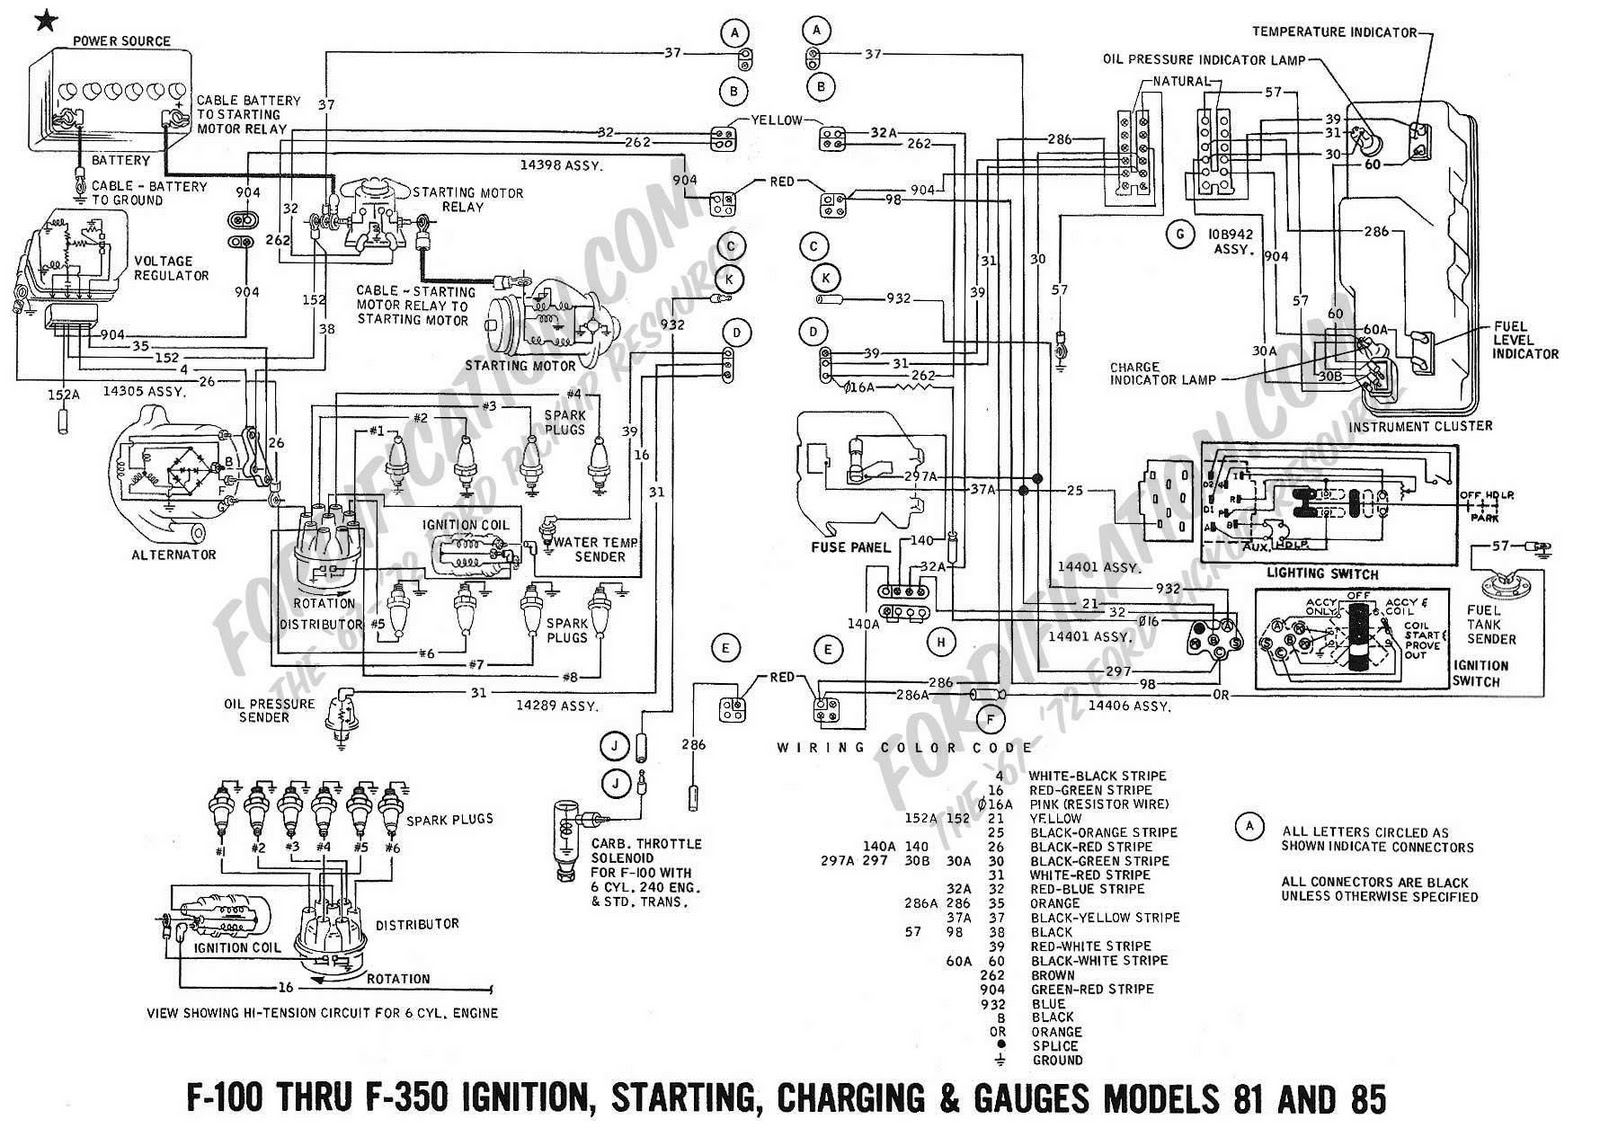 1979 F150 Fuel Gauge Wiring Diagram Archive Of Automotive 1999 Hyundai Elantra 1977 Ford Ltd Schematics Rh Thyl Co Uk